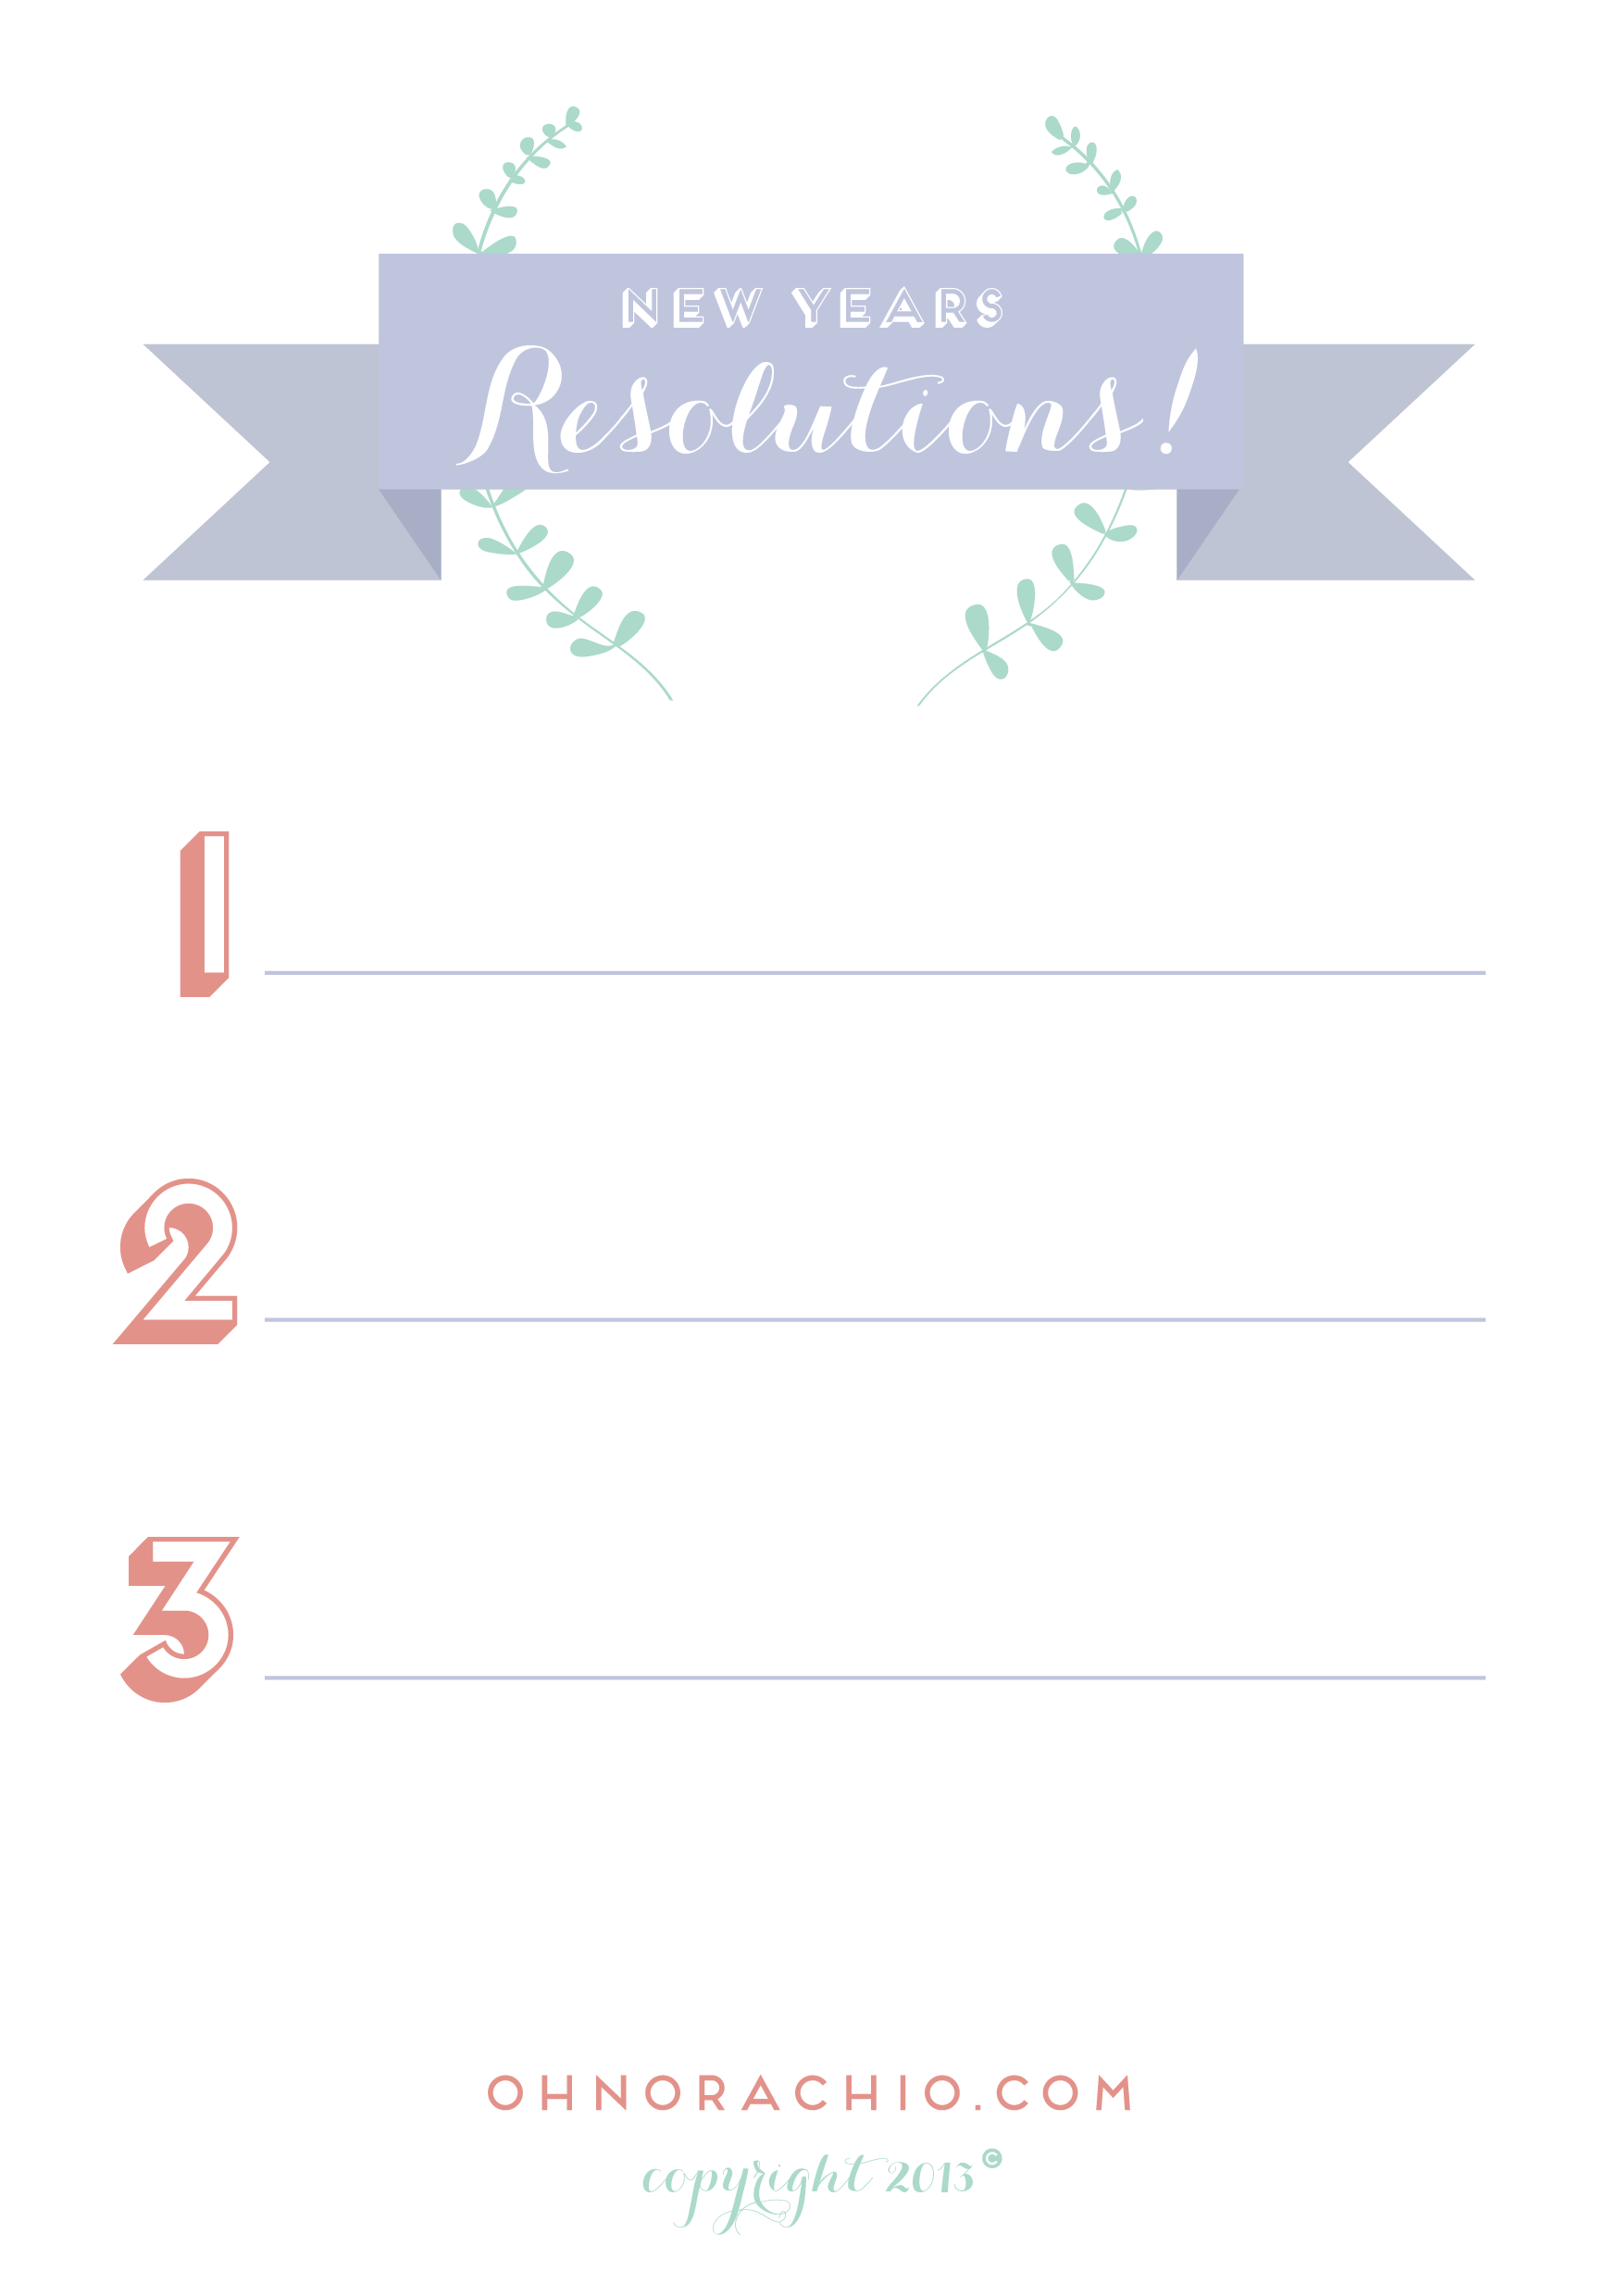 resolutions-01.png